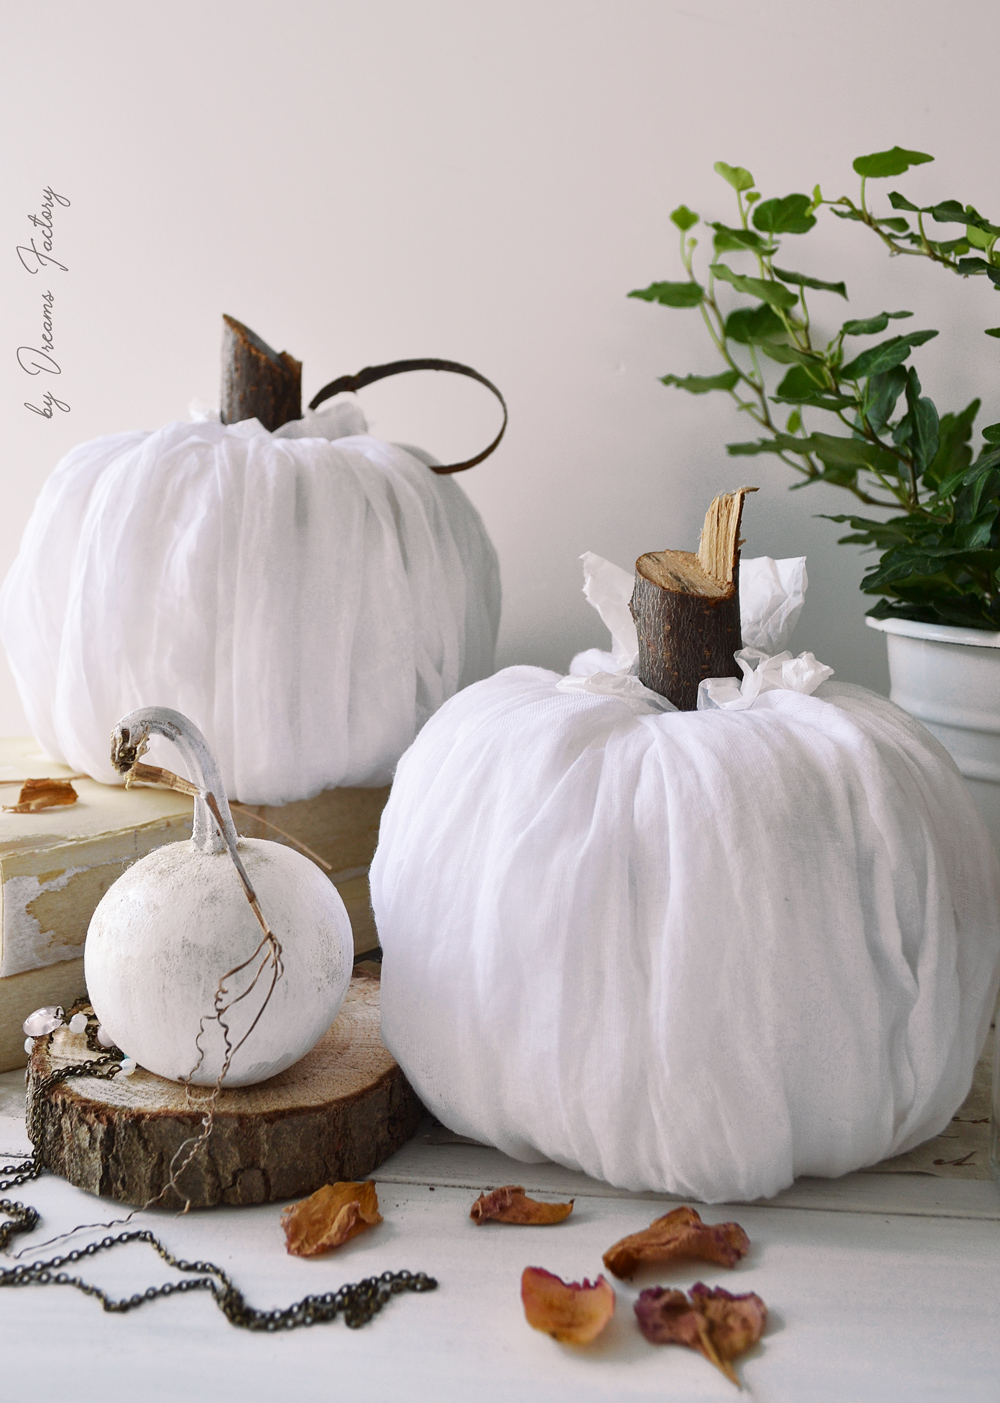 Make these stunning DIY no-sew fabric pumpkins in just 5 minutes and use them all over your home for beautiful fall decorating - by Dreams Factory